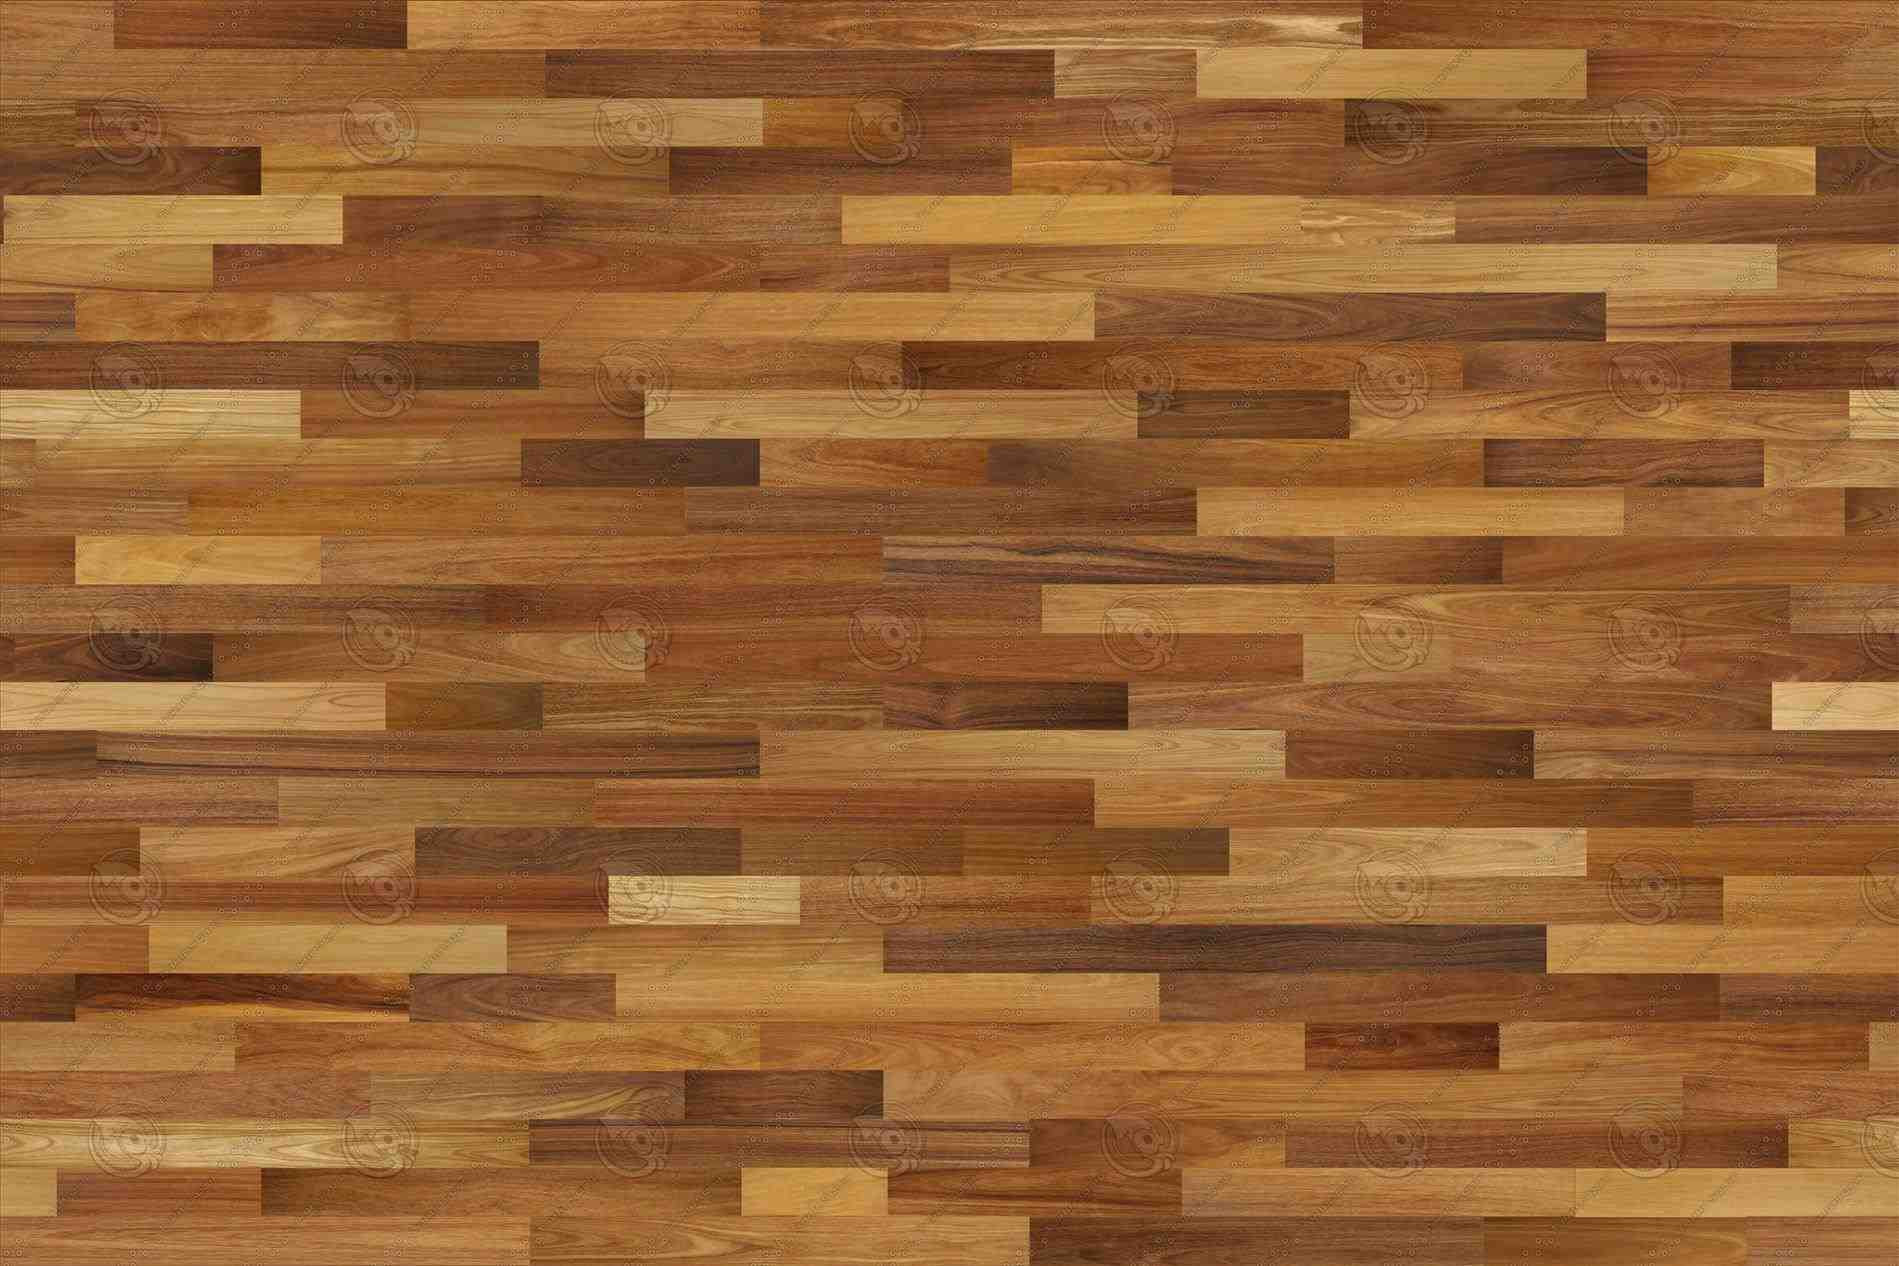 bruce solid oak hardwood flooring reviews of reclaimed wood floor installation awesome top 5 brands for solid throughout reclaimed wood floor installation new recm3040 relik reproduction reclaimed oak slow rustic grade 190mm of reclaimed